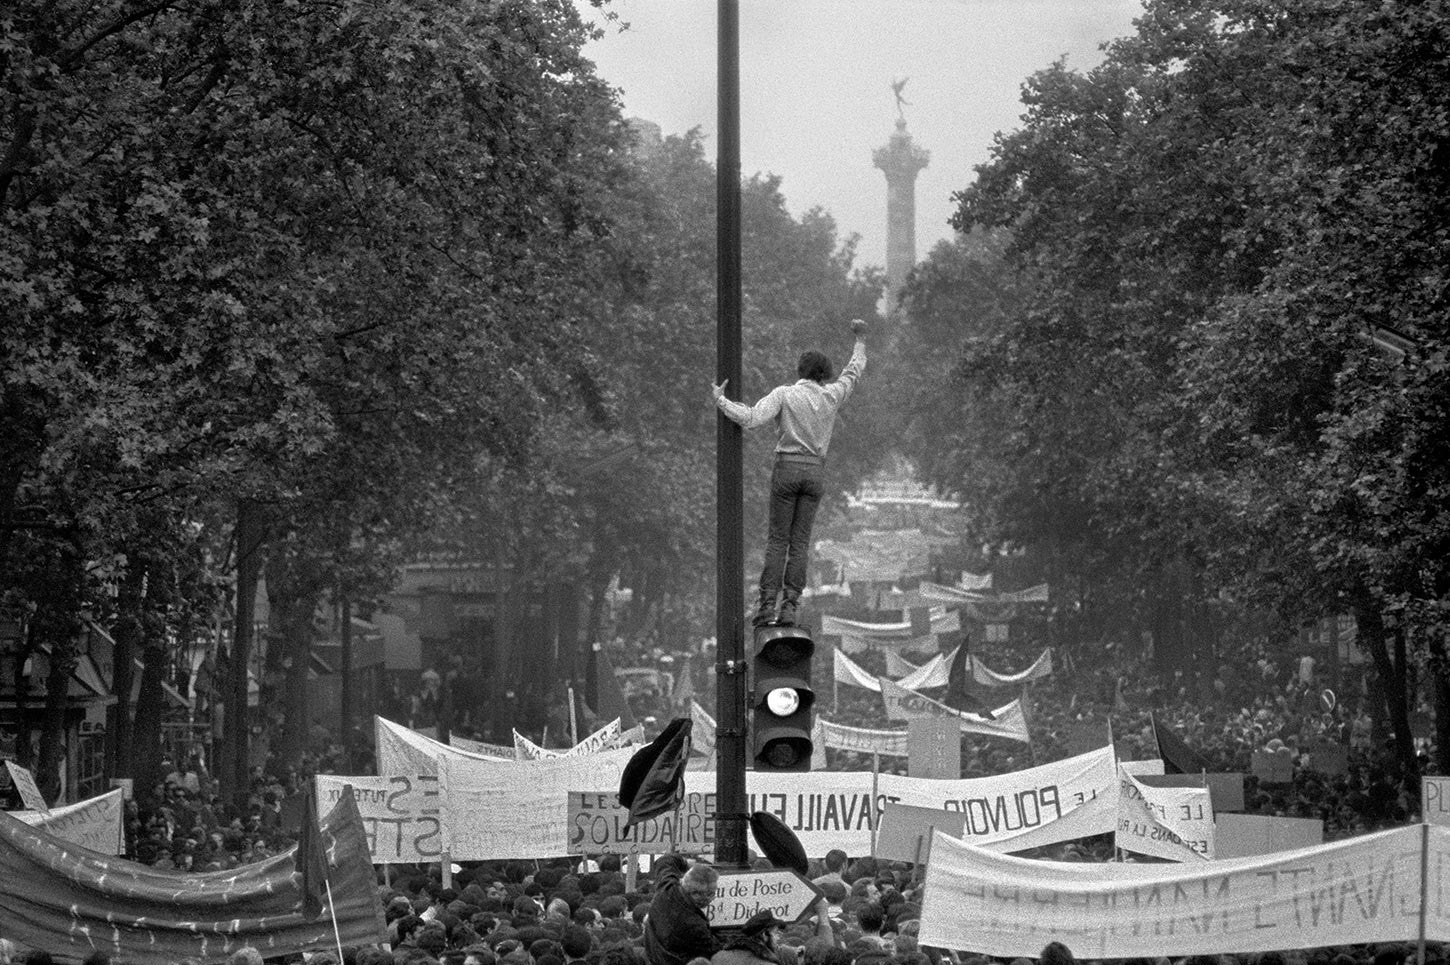 Worker and student demonstration from Republique to Denfert-Rochereau in Paris. May, 1968.